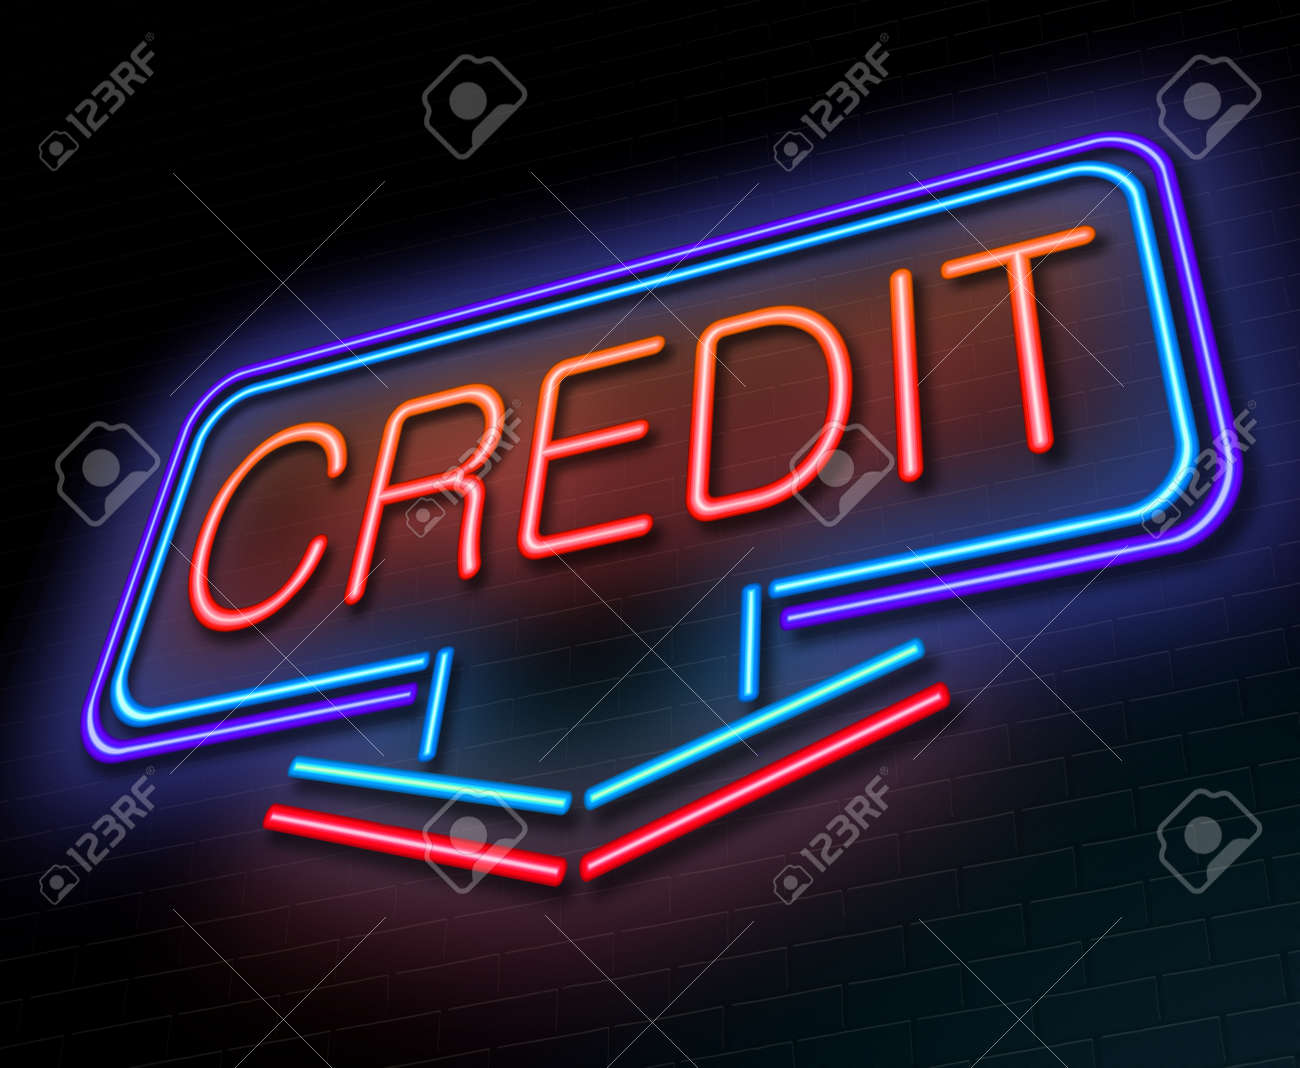 Illustration depicting an illuminated neon sign with a credit concept. Stock Illustration - 26911260